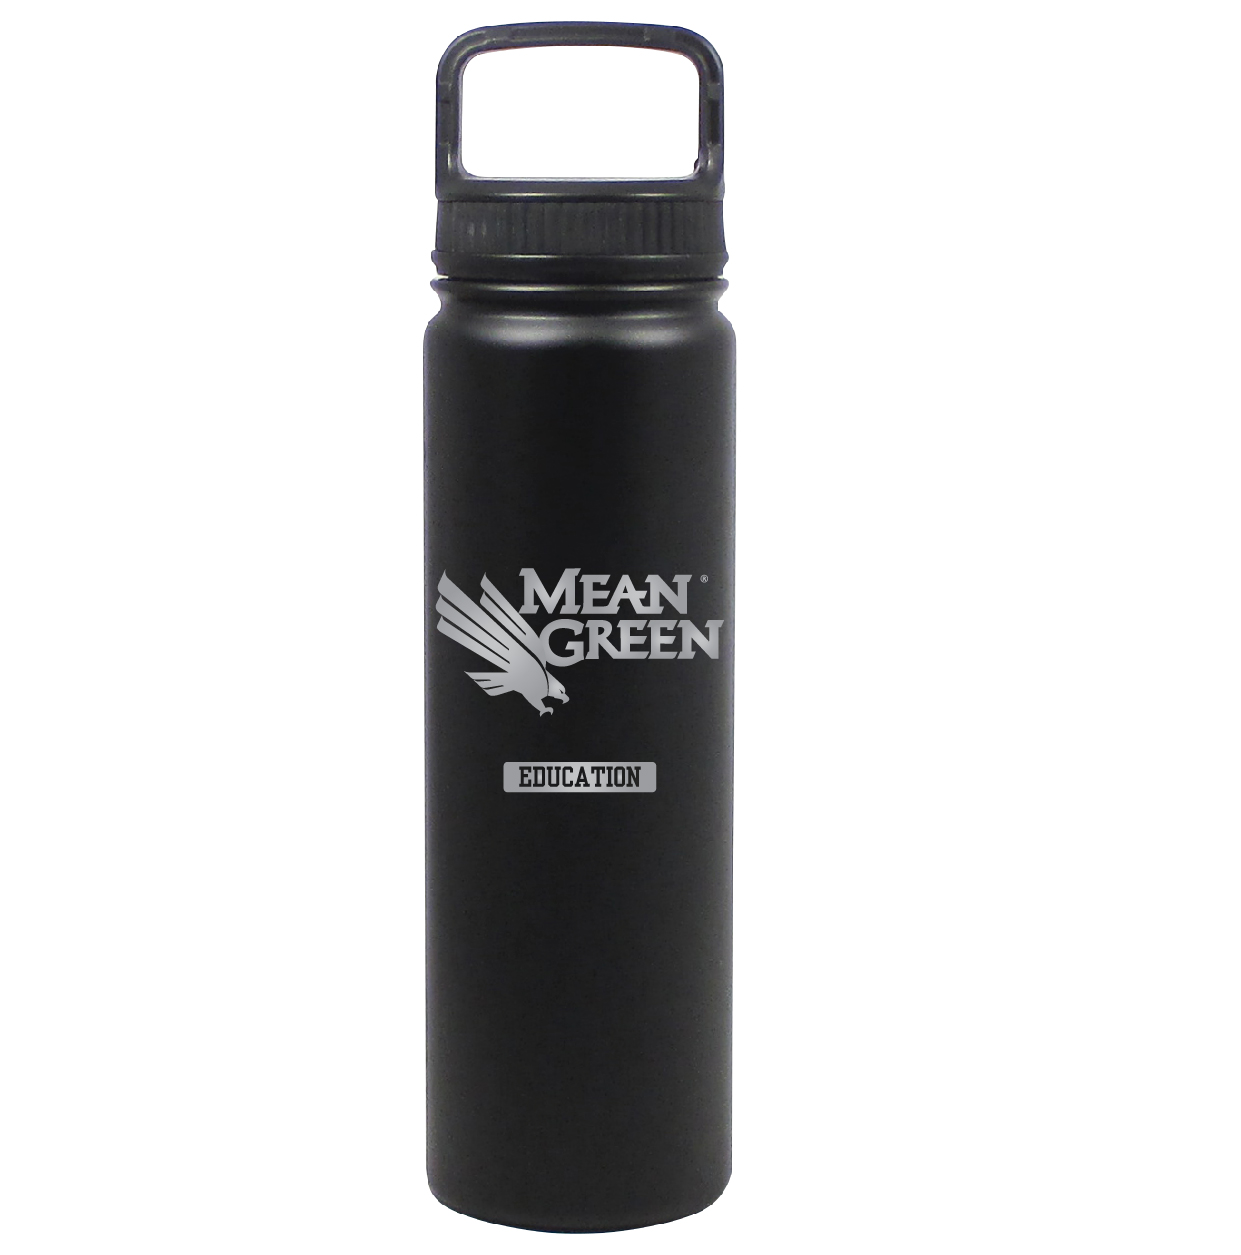 University of North Texas 24 oz Stainless Water Bottle EDUCATION